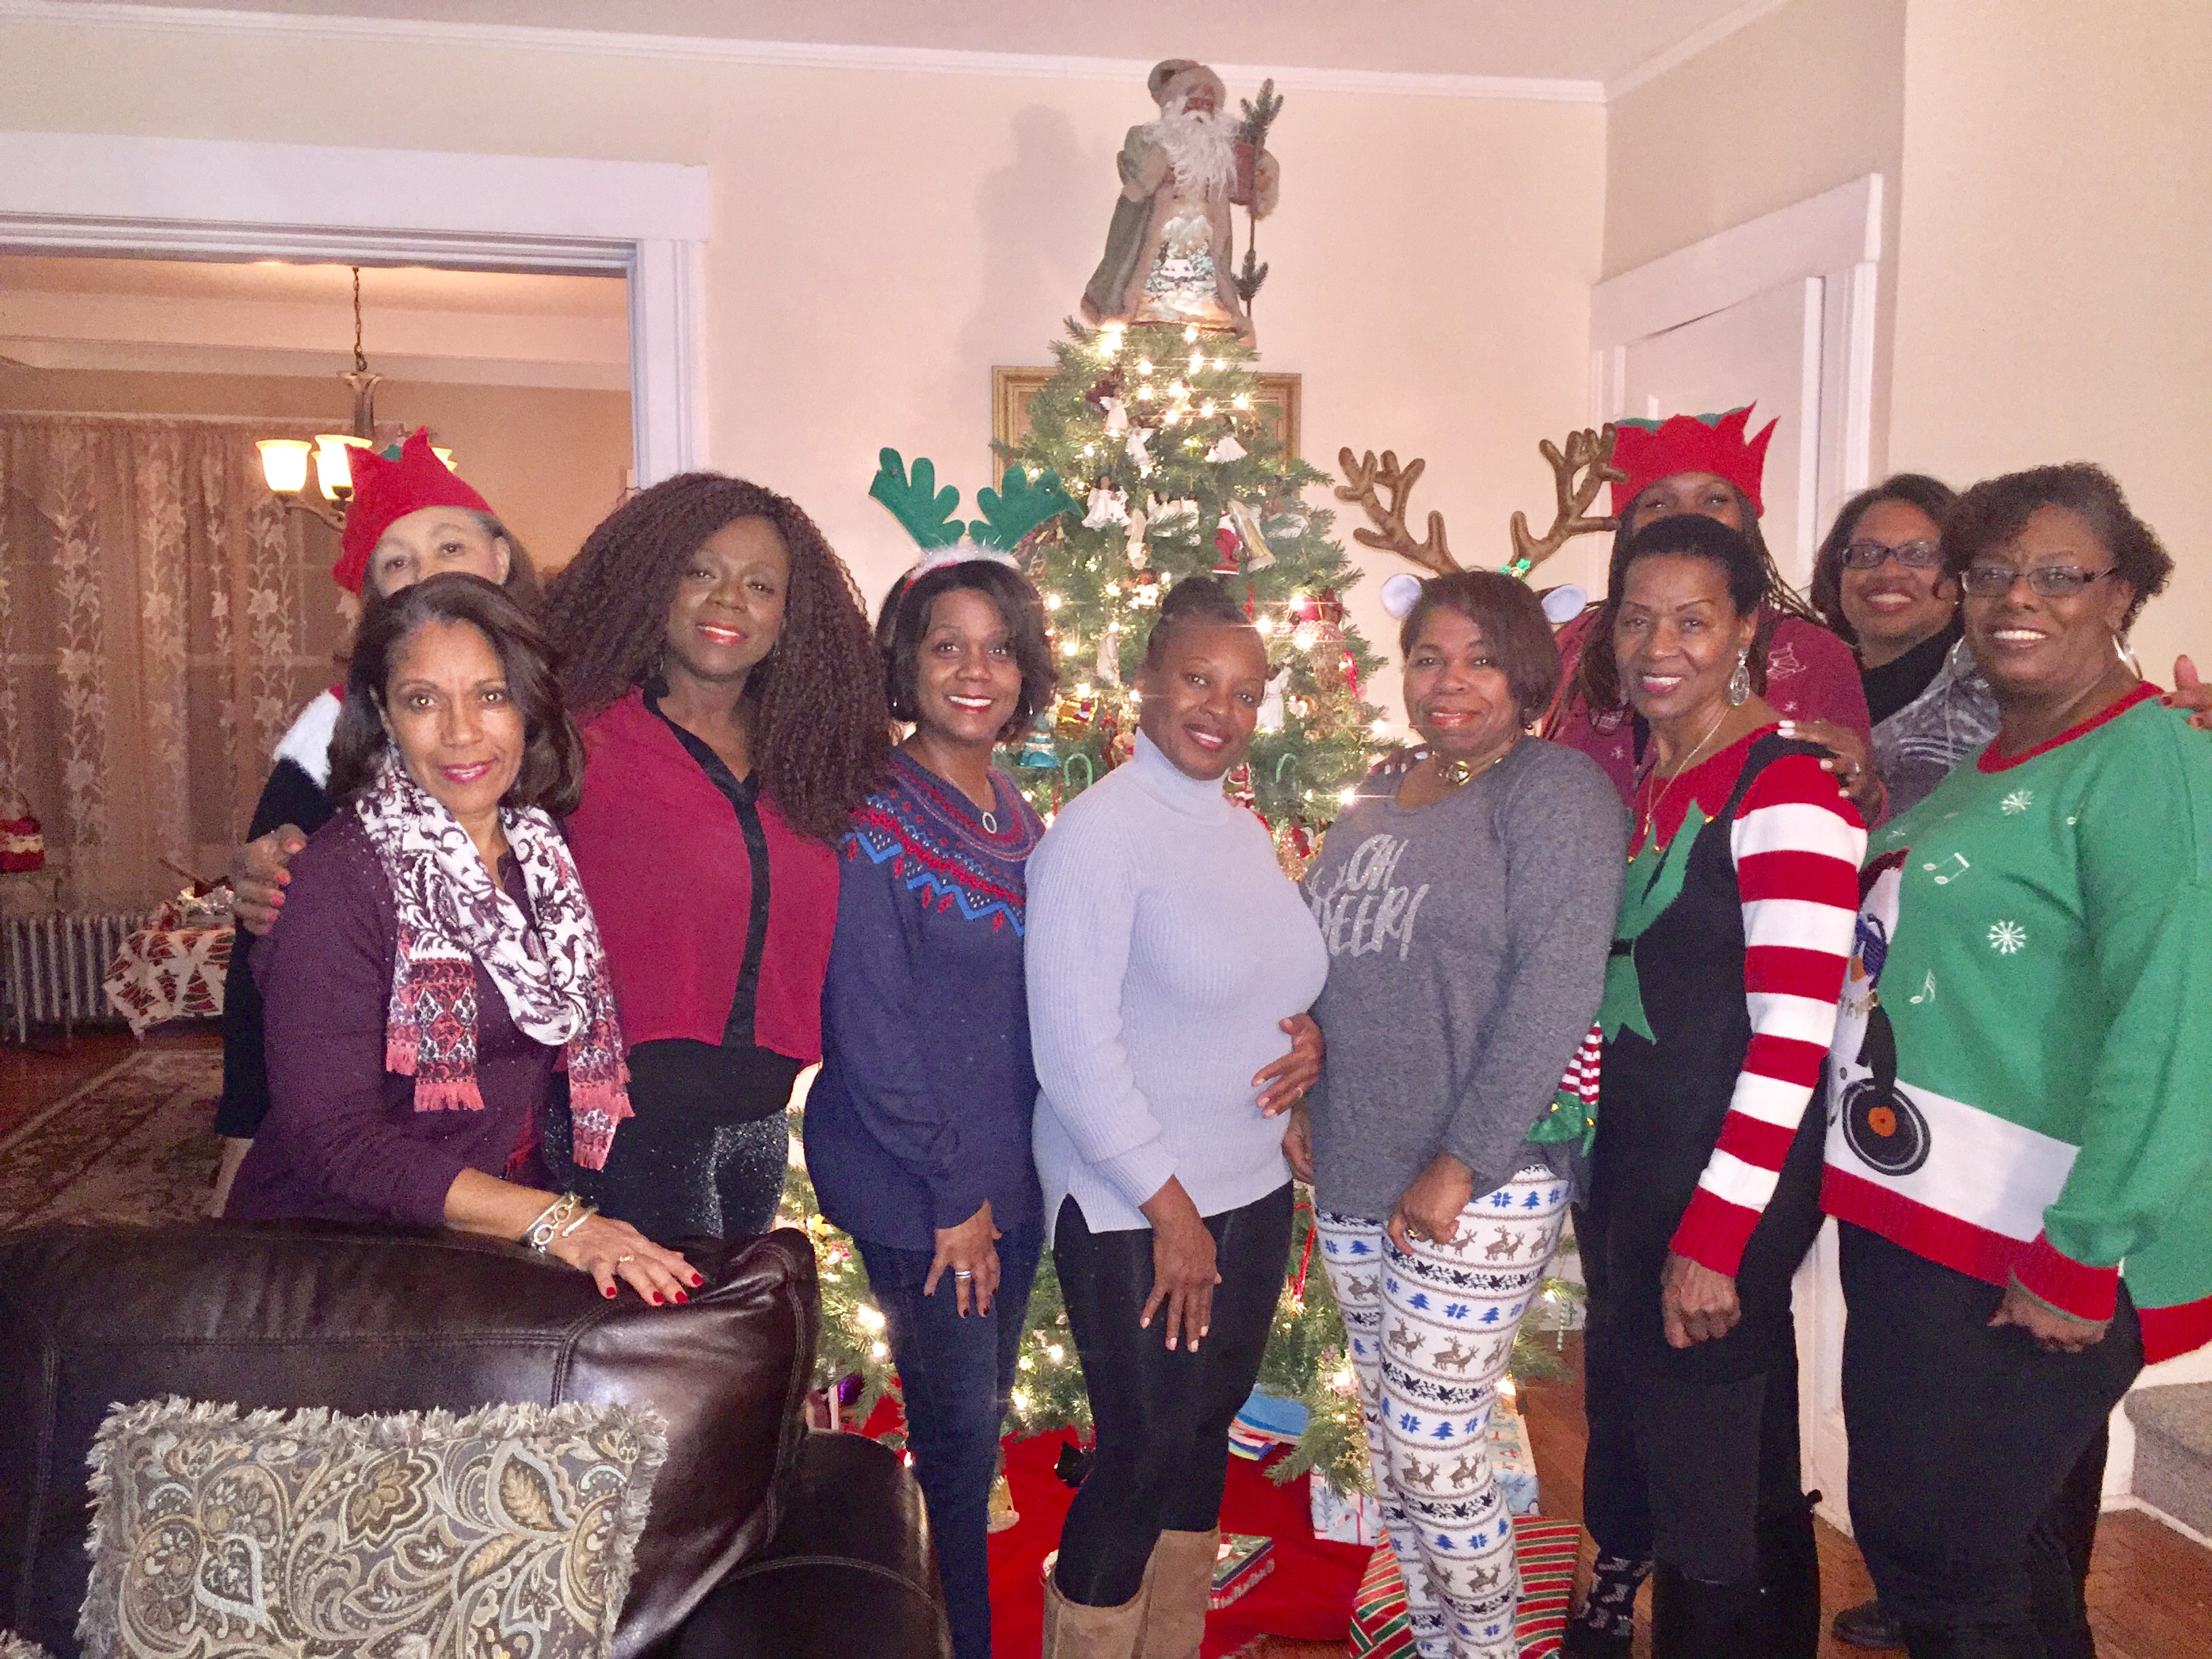 gucc-associates-chapter-members-and-friends-at-annual-ugly-sweater-party-at-mary-whitners-home_31972